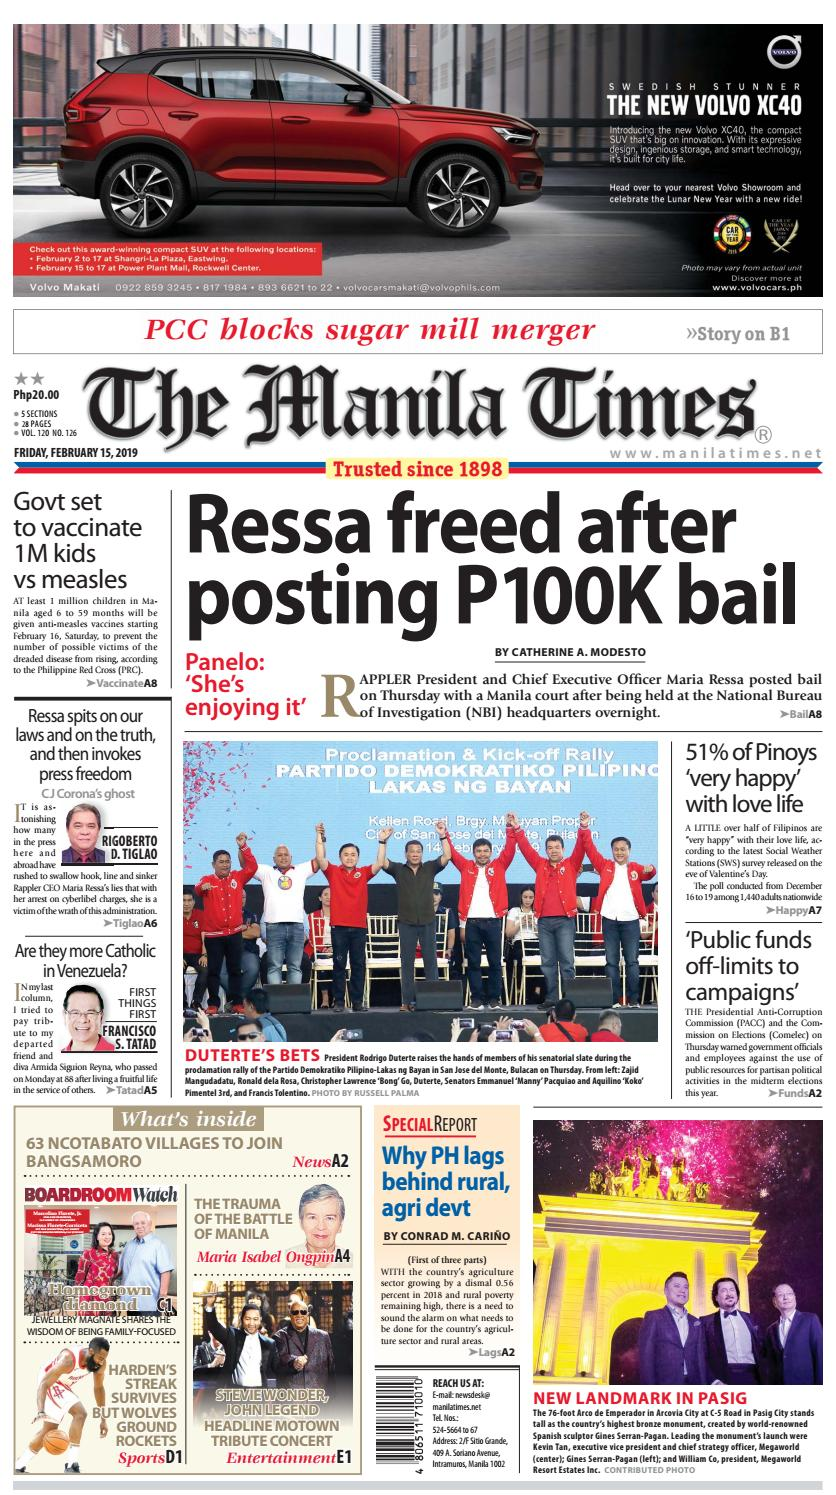 a774043df9f THE MANILA TIMES | FEBRUARY 15, 2019 by The Manila Times - issuu